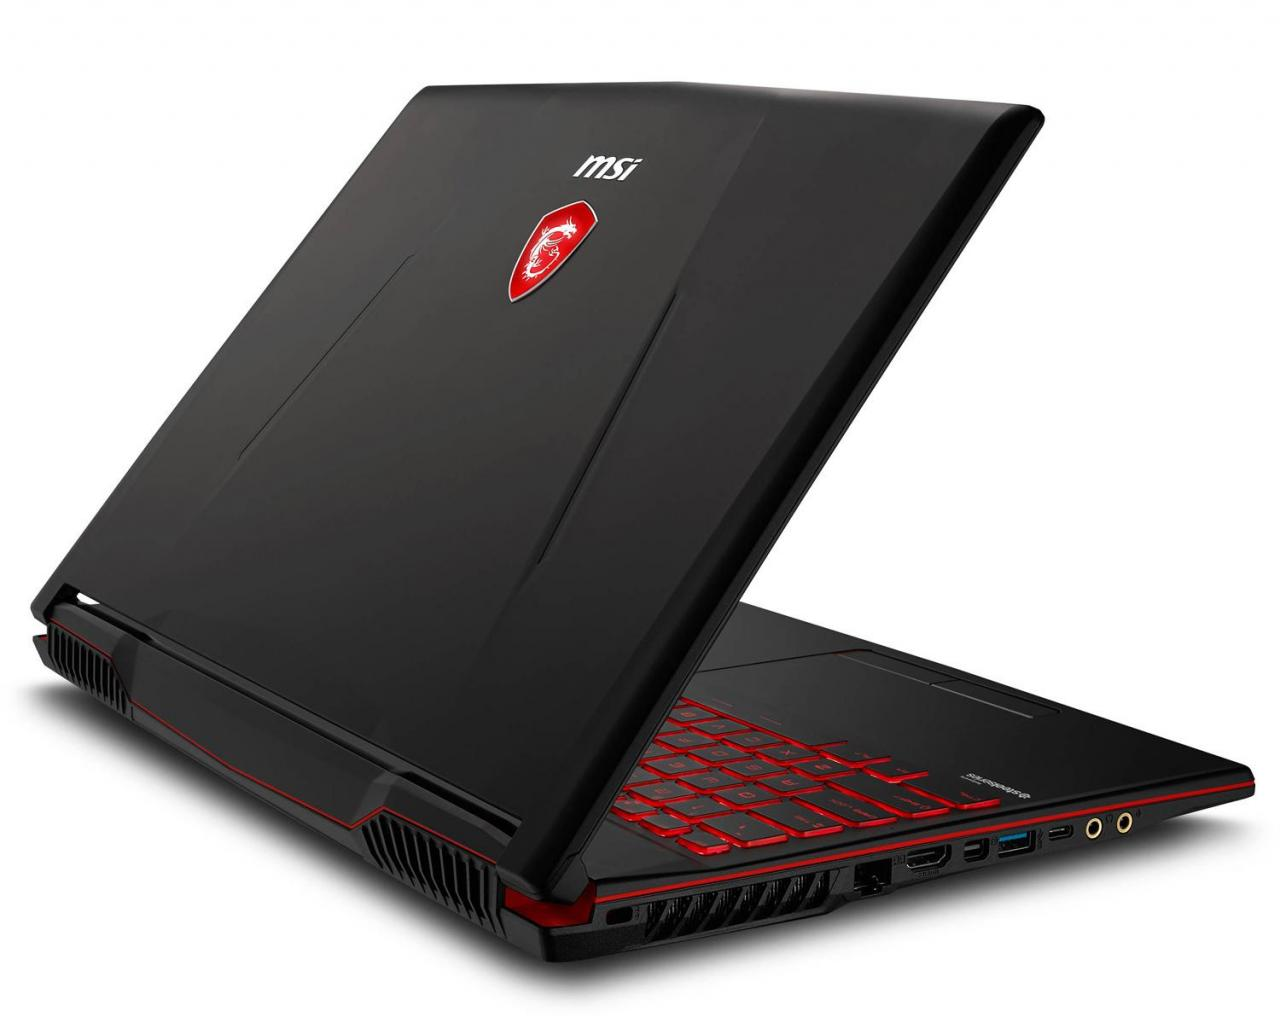 MSI GL63 8RD (Intel 8th Gen) Specs and Details